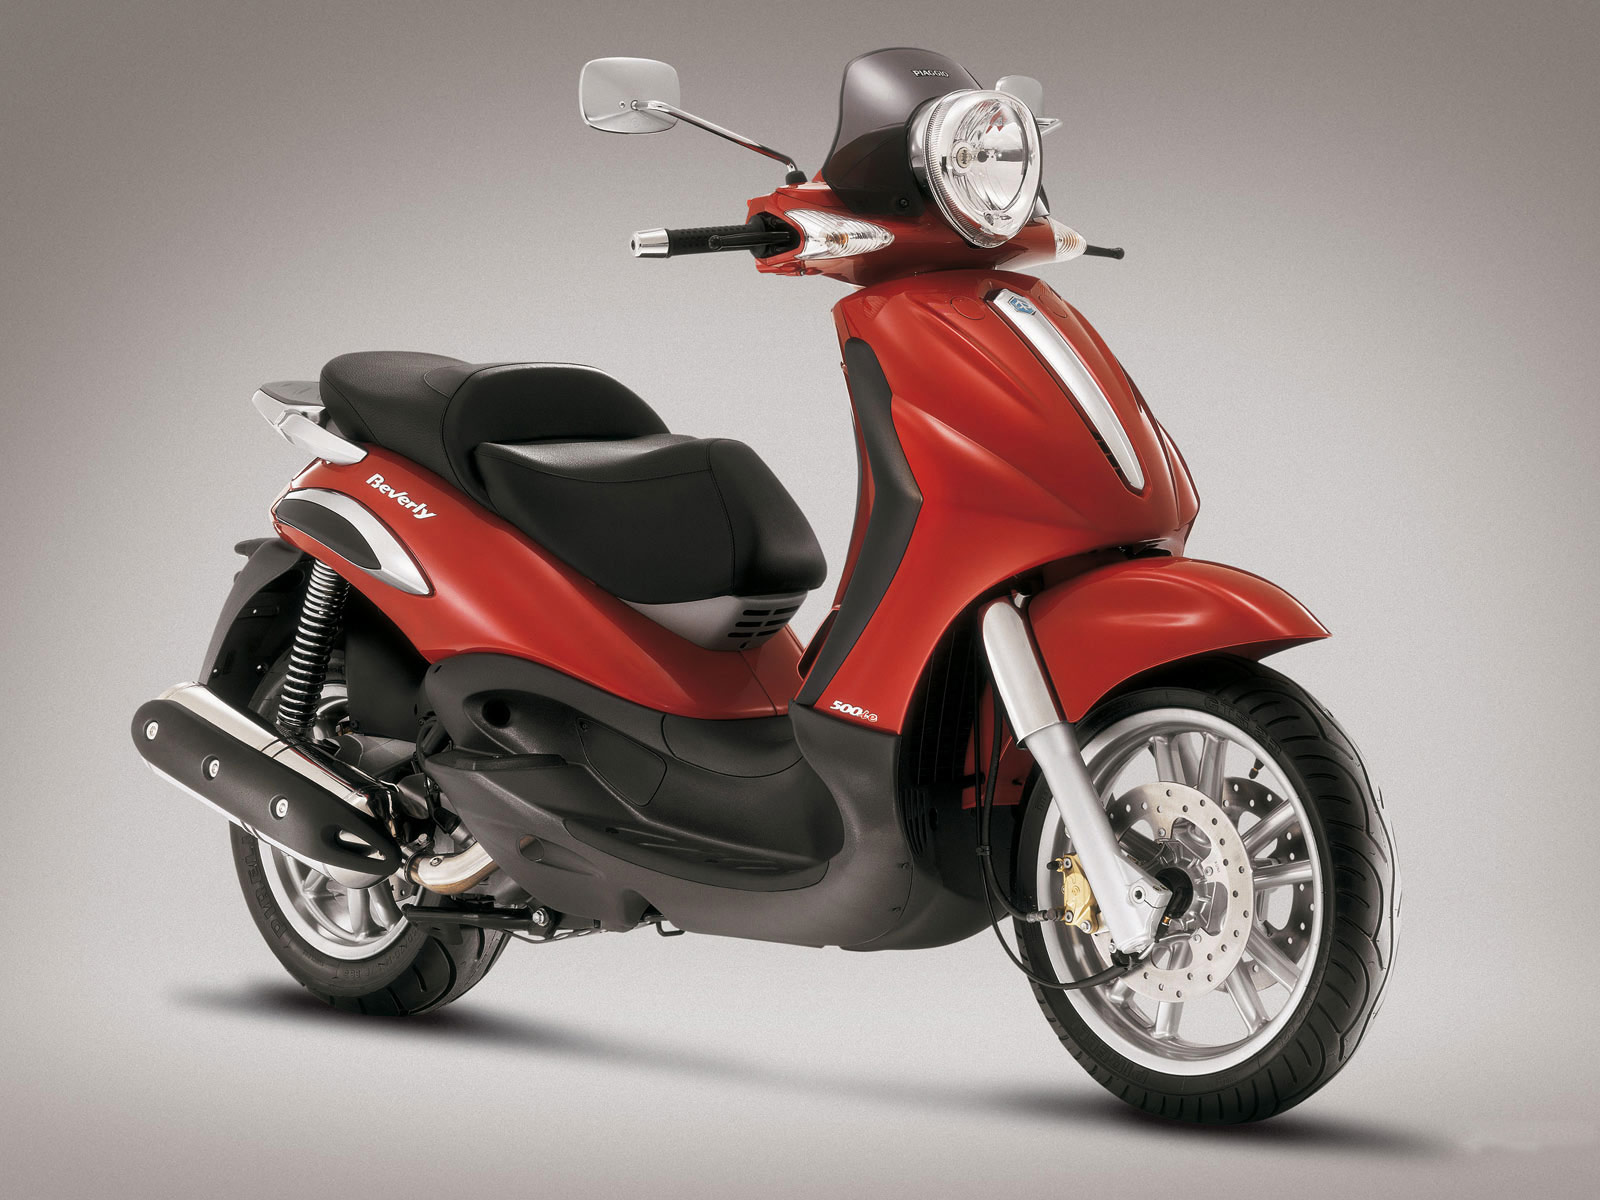 2007 piaggio beverly 500ie scooter pictures. Black Bedroom Furniture Sets. Home Design Ideas